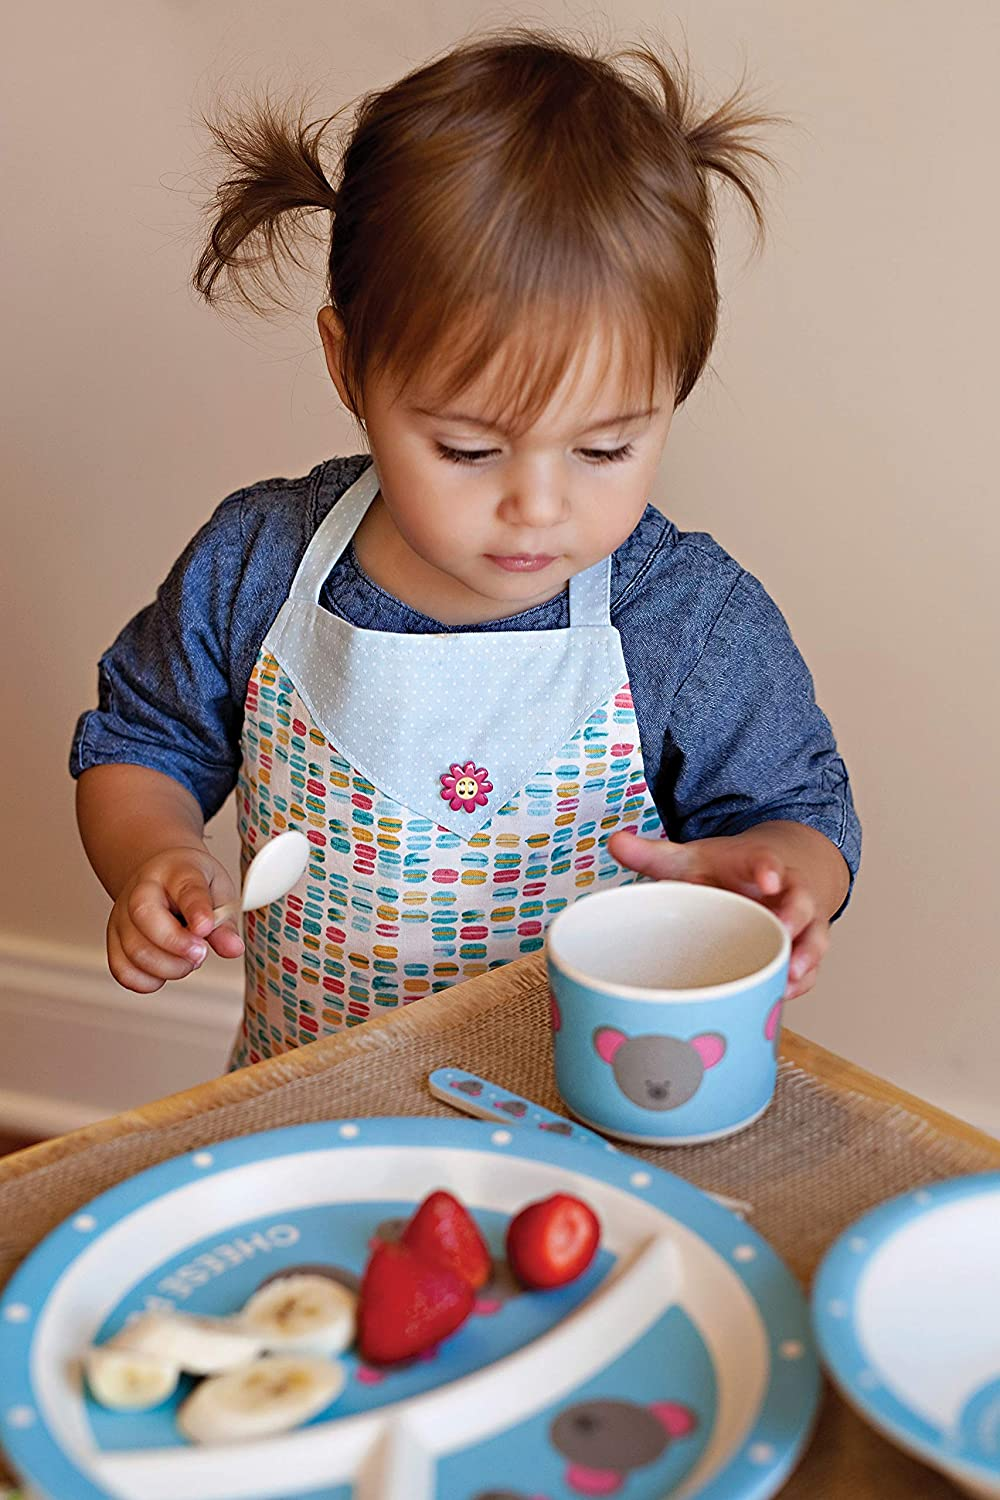 Red Rover 20021 Hippo Childrens Dinner Set 5-Piece Multicolor